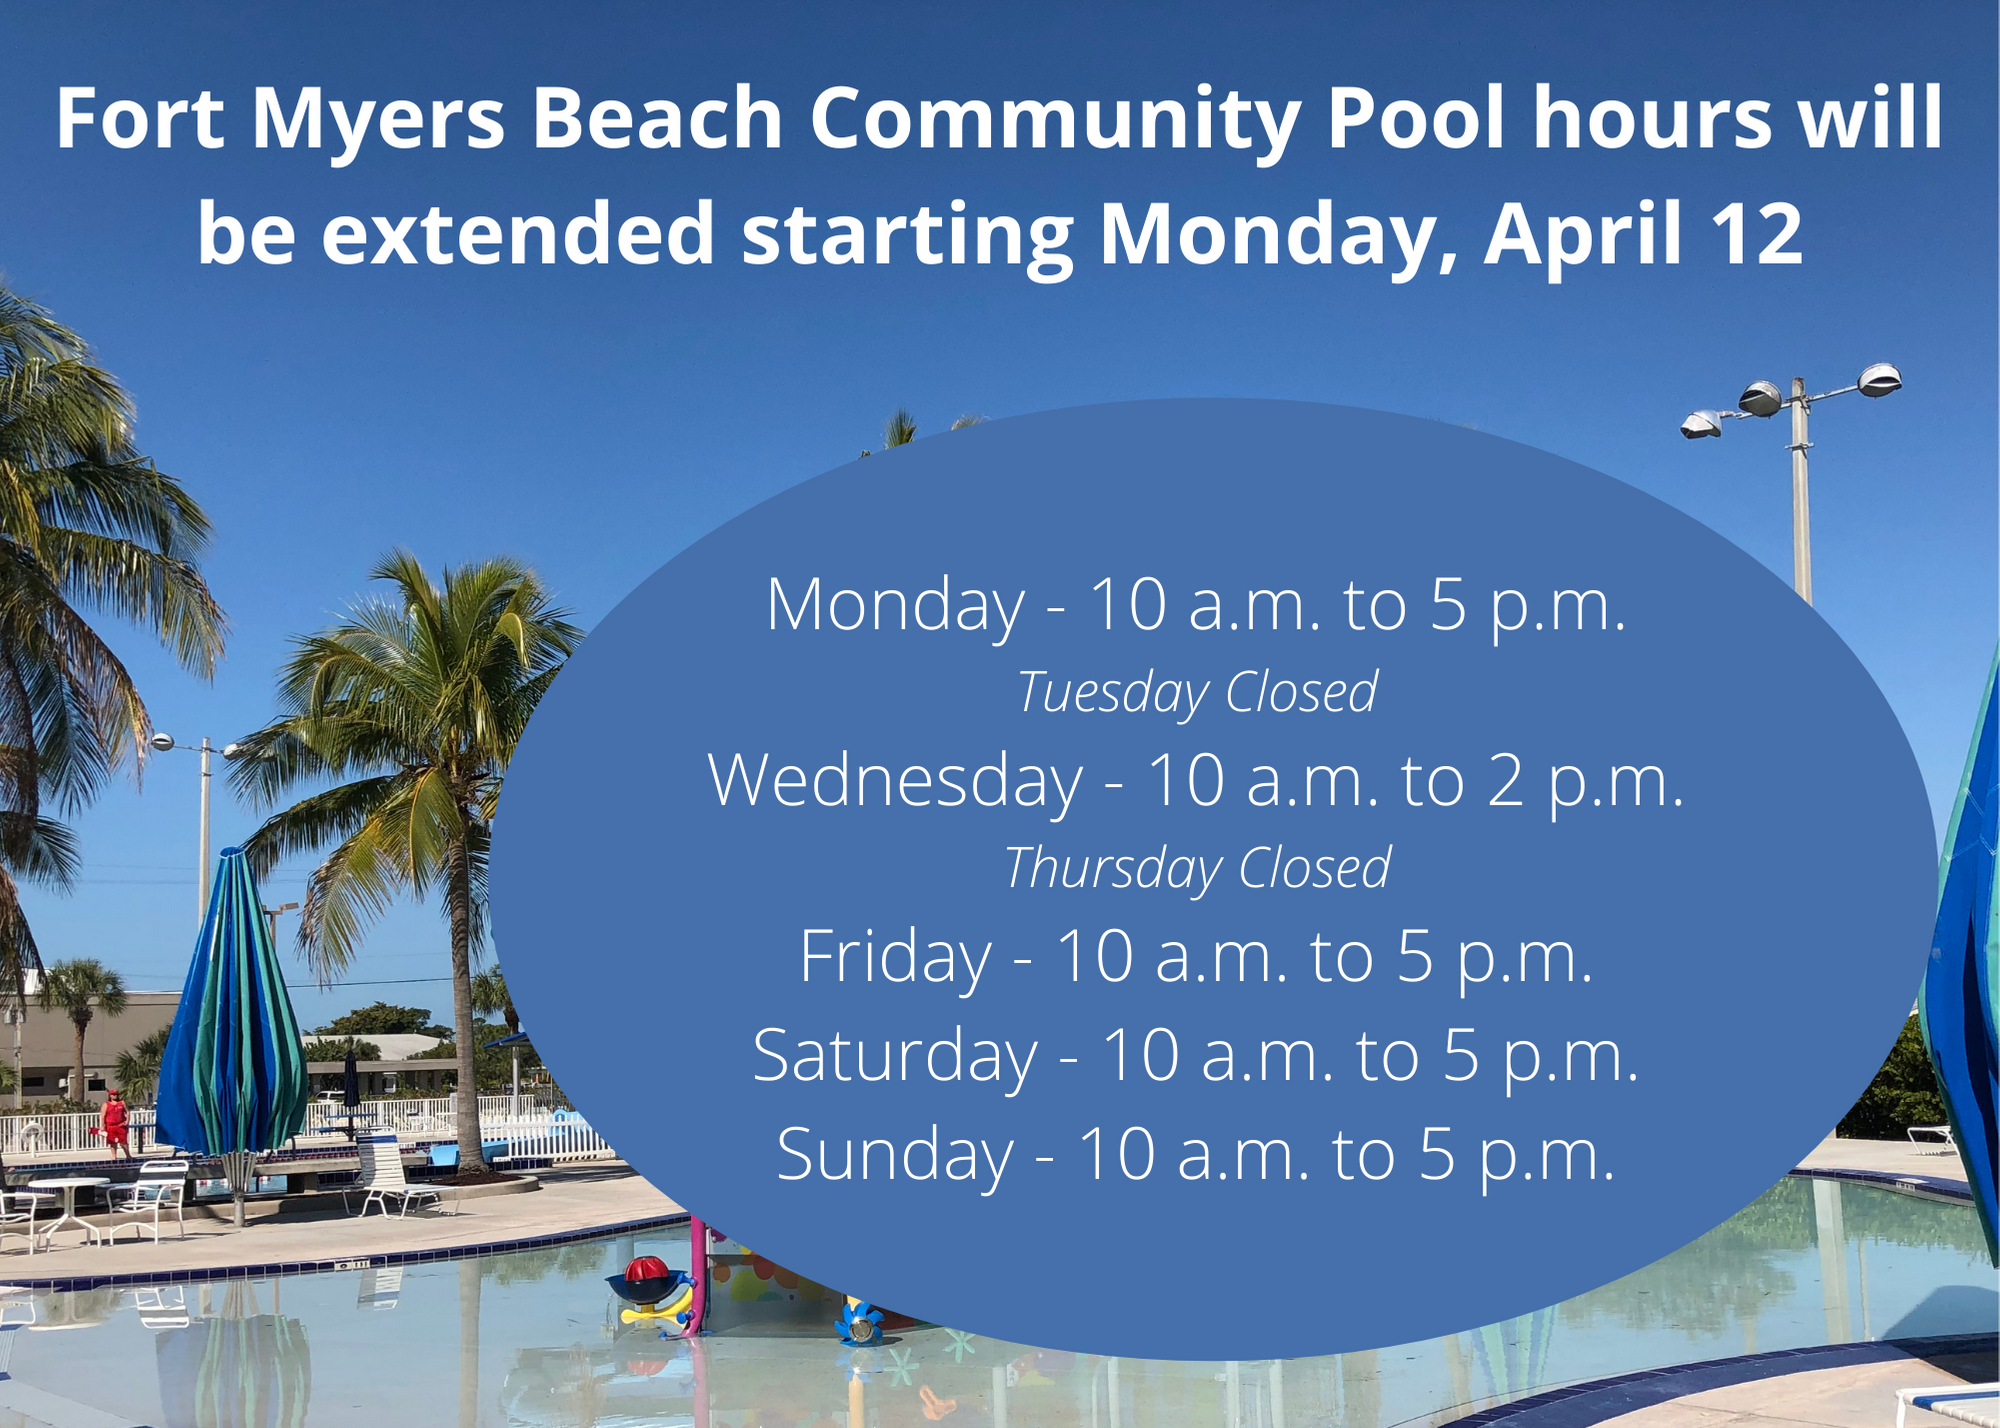 Pools hours changing april 12